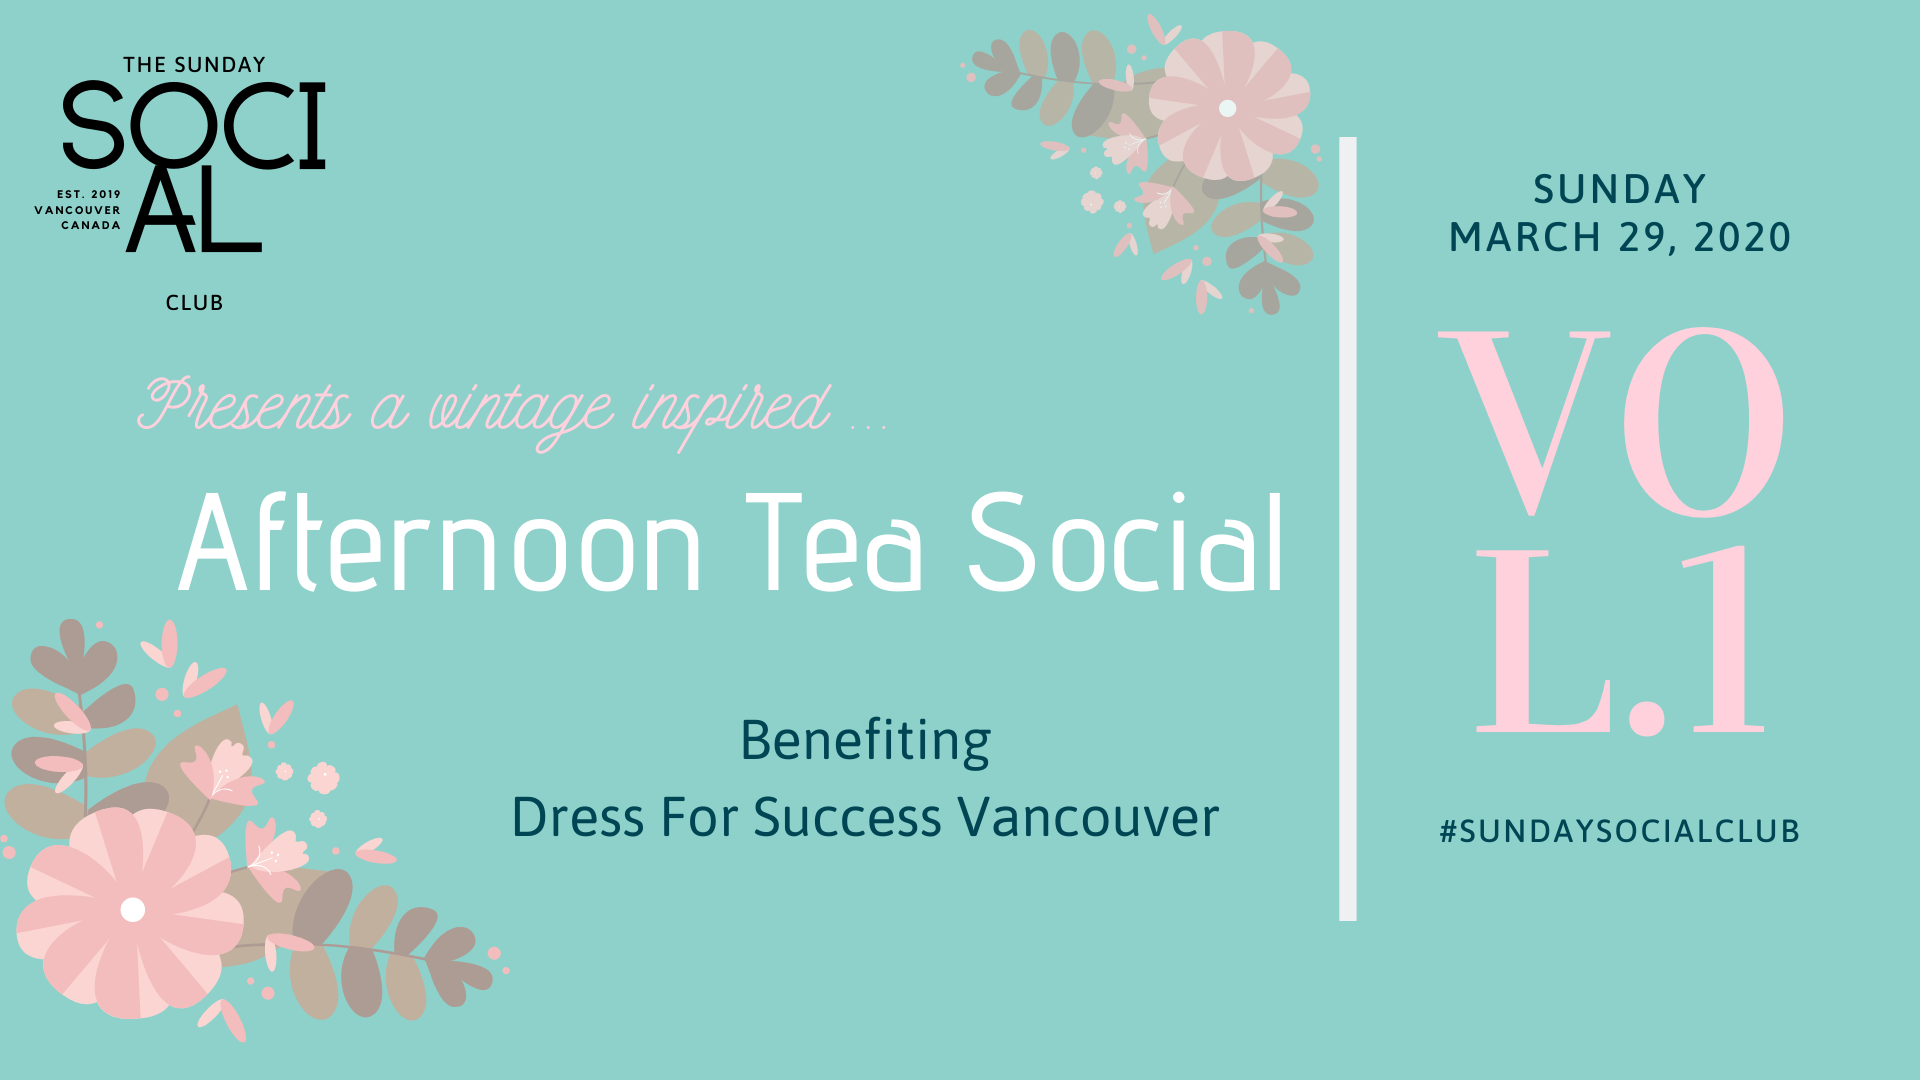 An Afternoon Tea Social Benefiting Dress For Success Vancouver